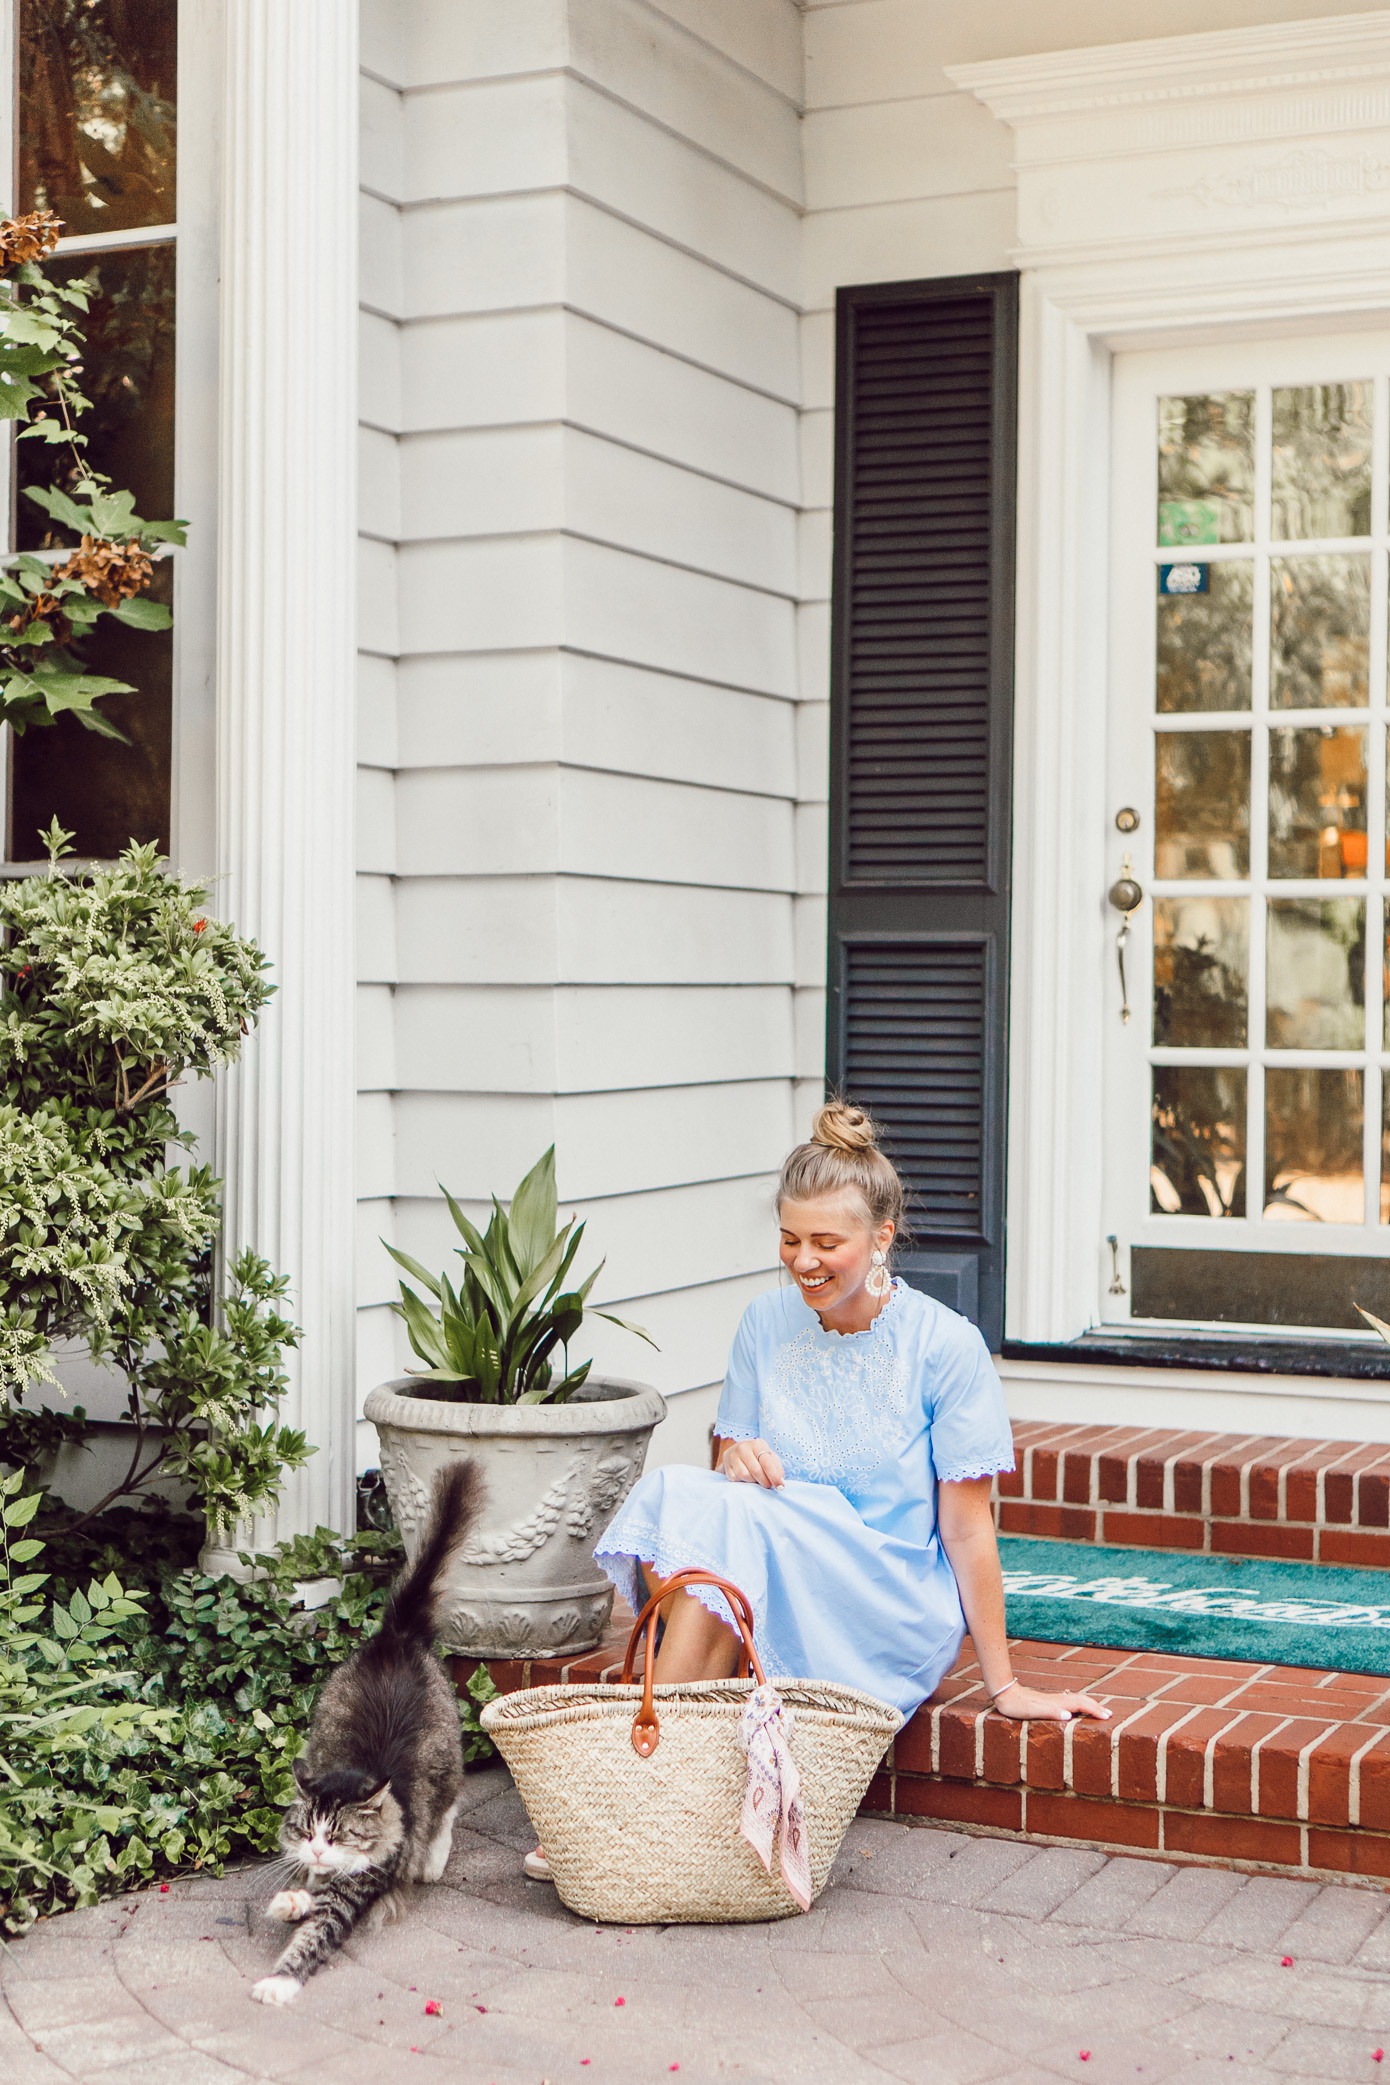 Blue Swing Dress | The Morehead Inn Charlotte NC Bed & Breakfast featured on Louella Reese Life & Style Blog